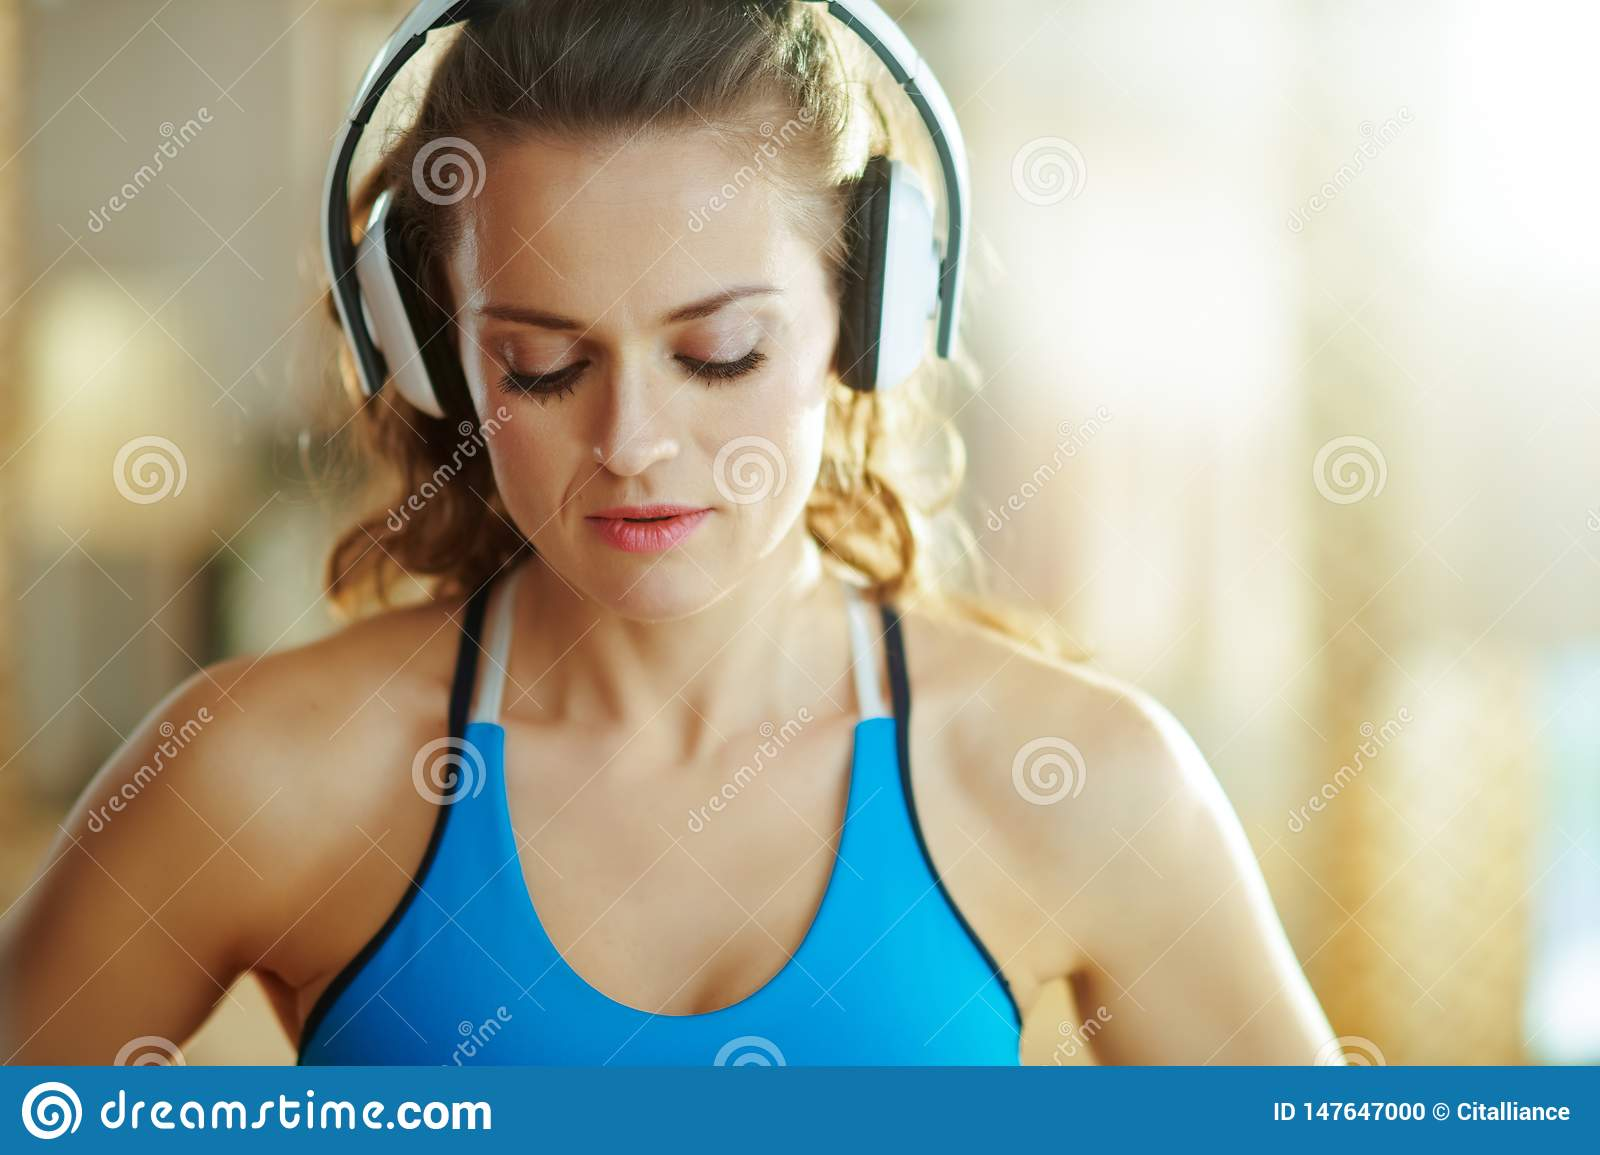 Woman listening to music with headphones in modern house